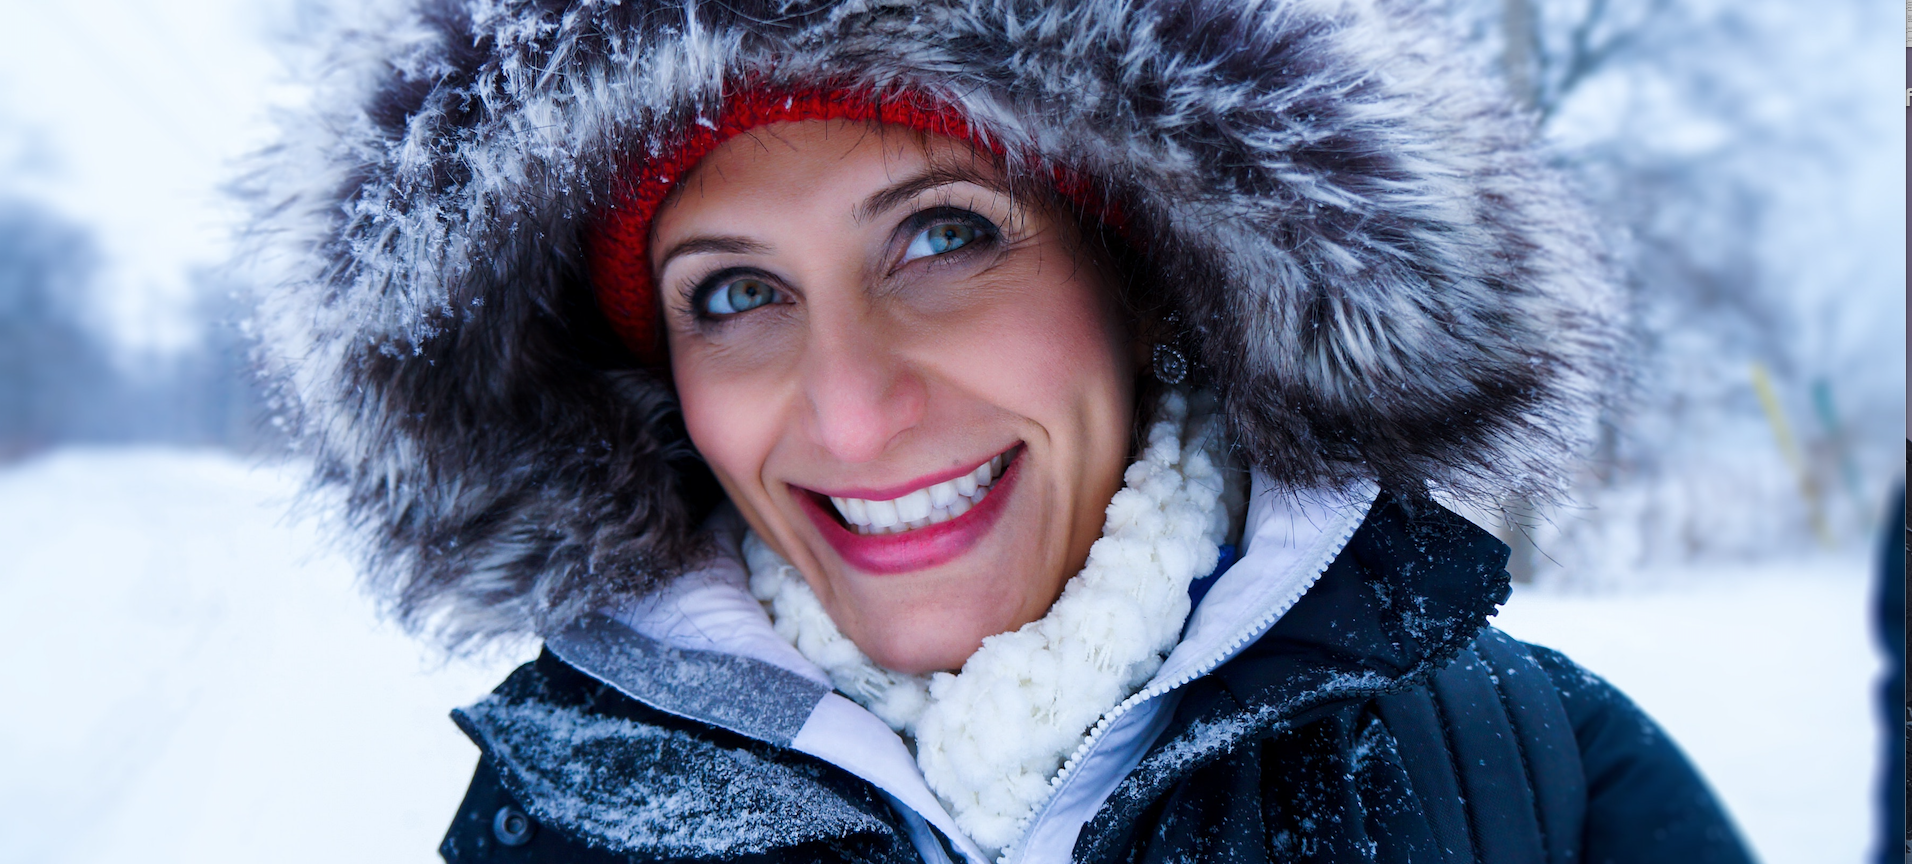 Seven Ways to Look After Your Eyes This Winter